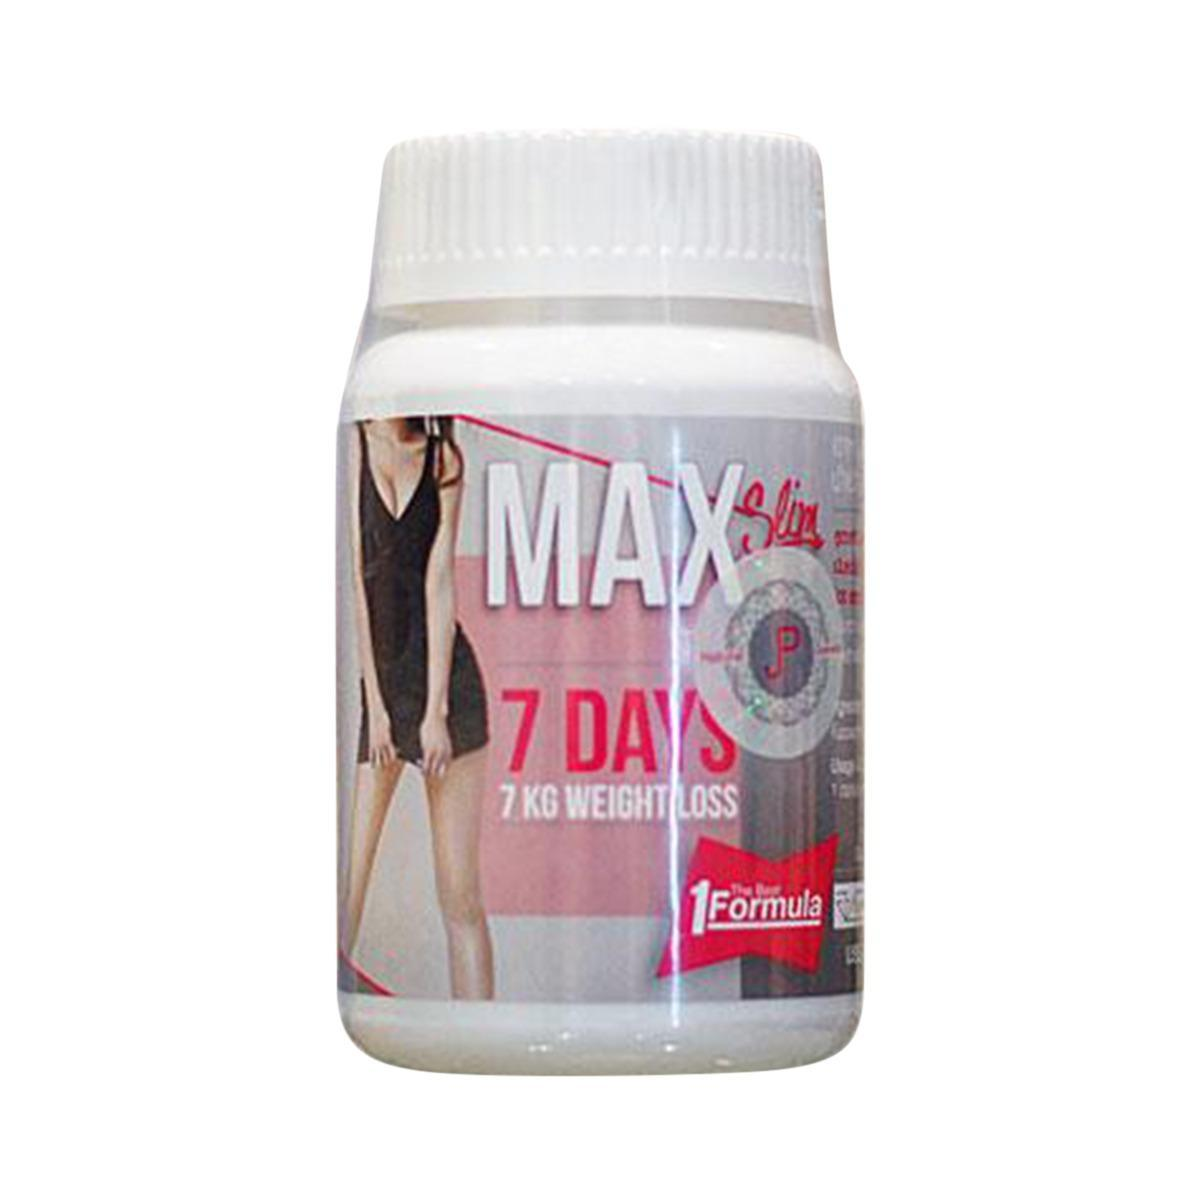 Max Slim 7 Days 7 Kg Weight Loss Dietary Supplements Slimming Product Fat Burn Formula 30 Pills No Yoyo Capsules Weight Loss Tablets